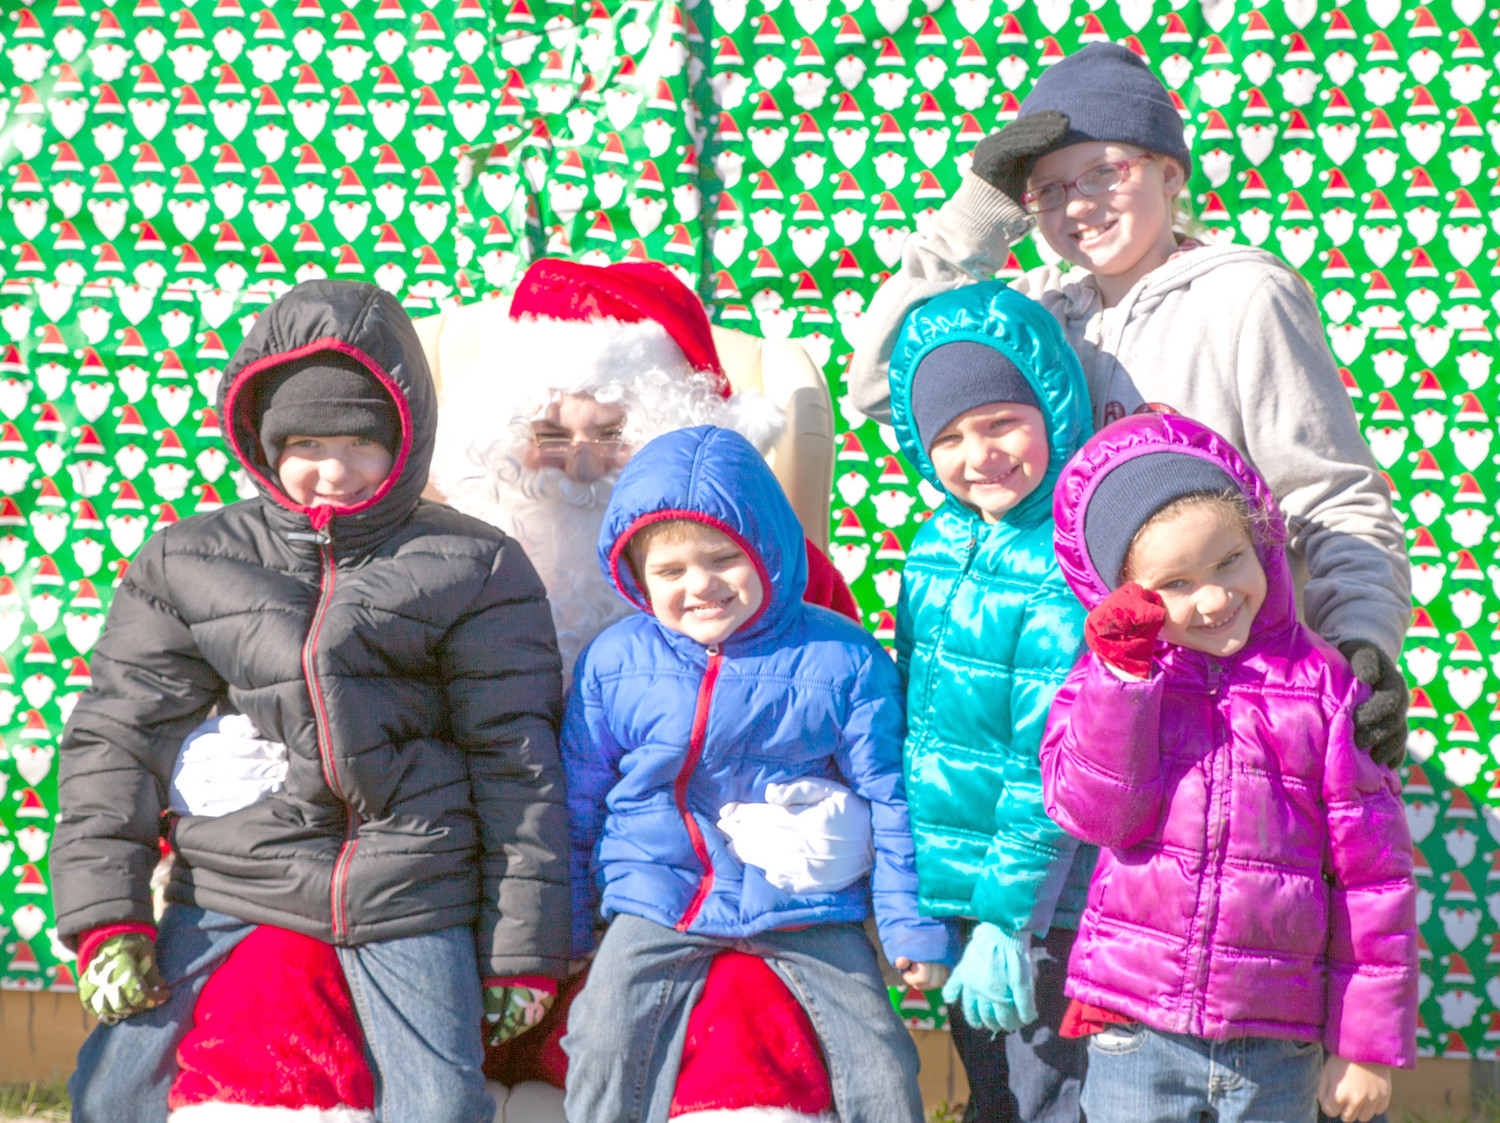 SANTA WAS AT THE Annual Polk County Christmas Parade visiting with children and posing for photos.  Picture from left are Anthony Warfield, Corbin Schaal, Chloe Schaal, Cambree Schaal and Elizabeth Warfield.